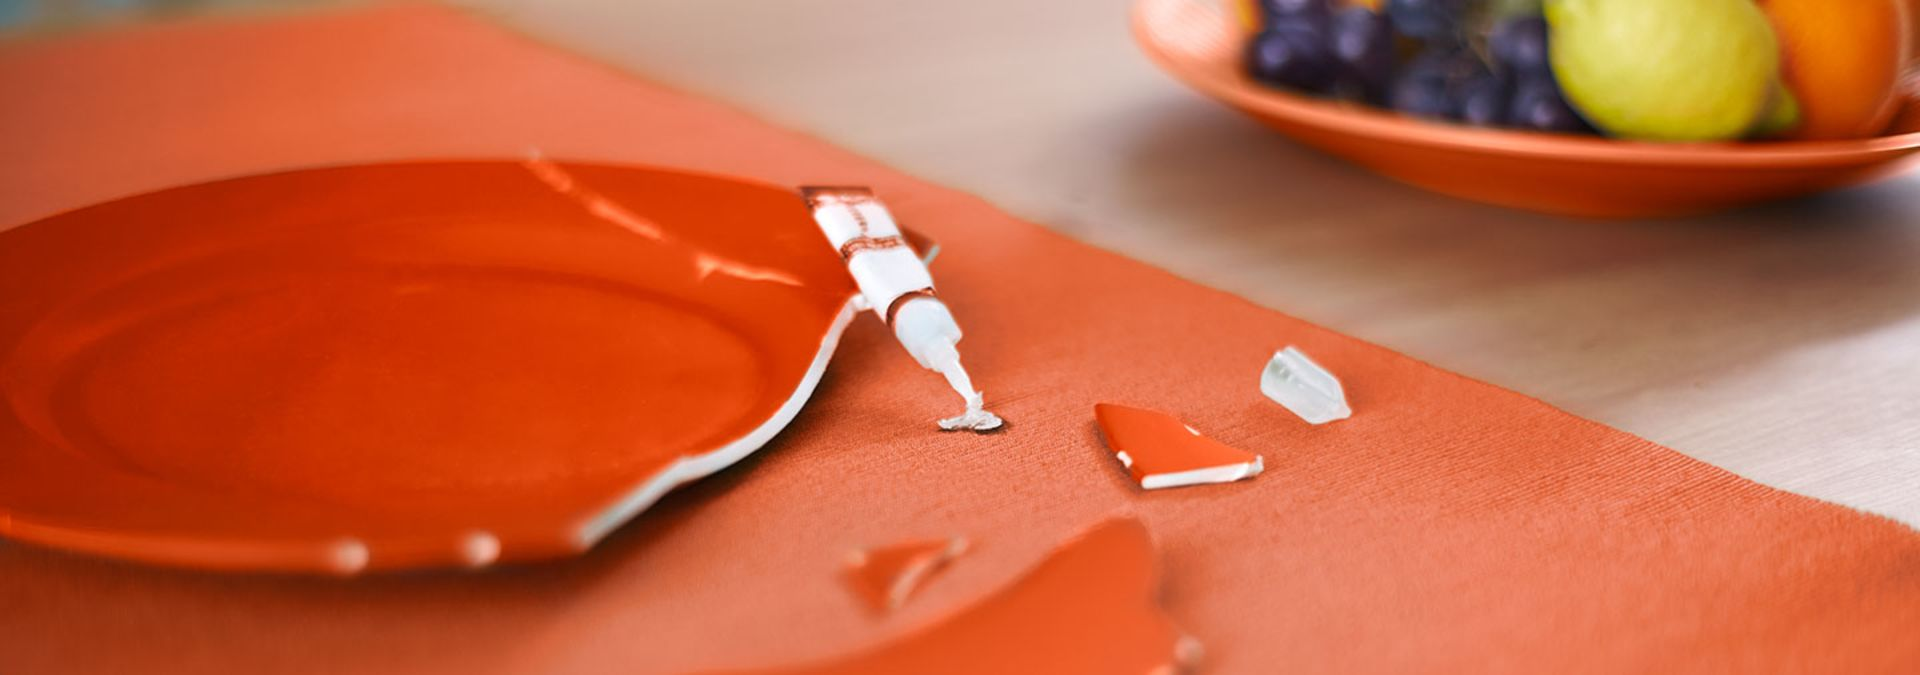 How to Remove Super Glue Stains